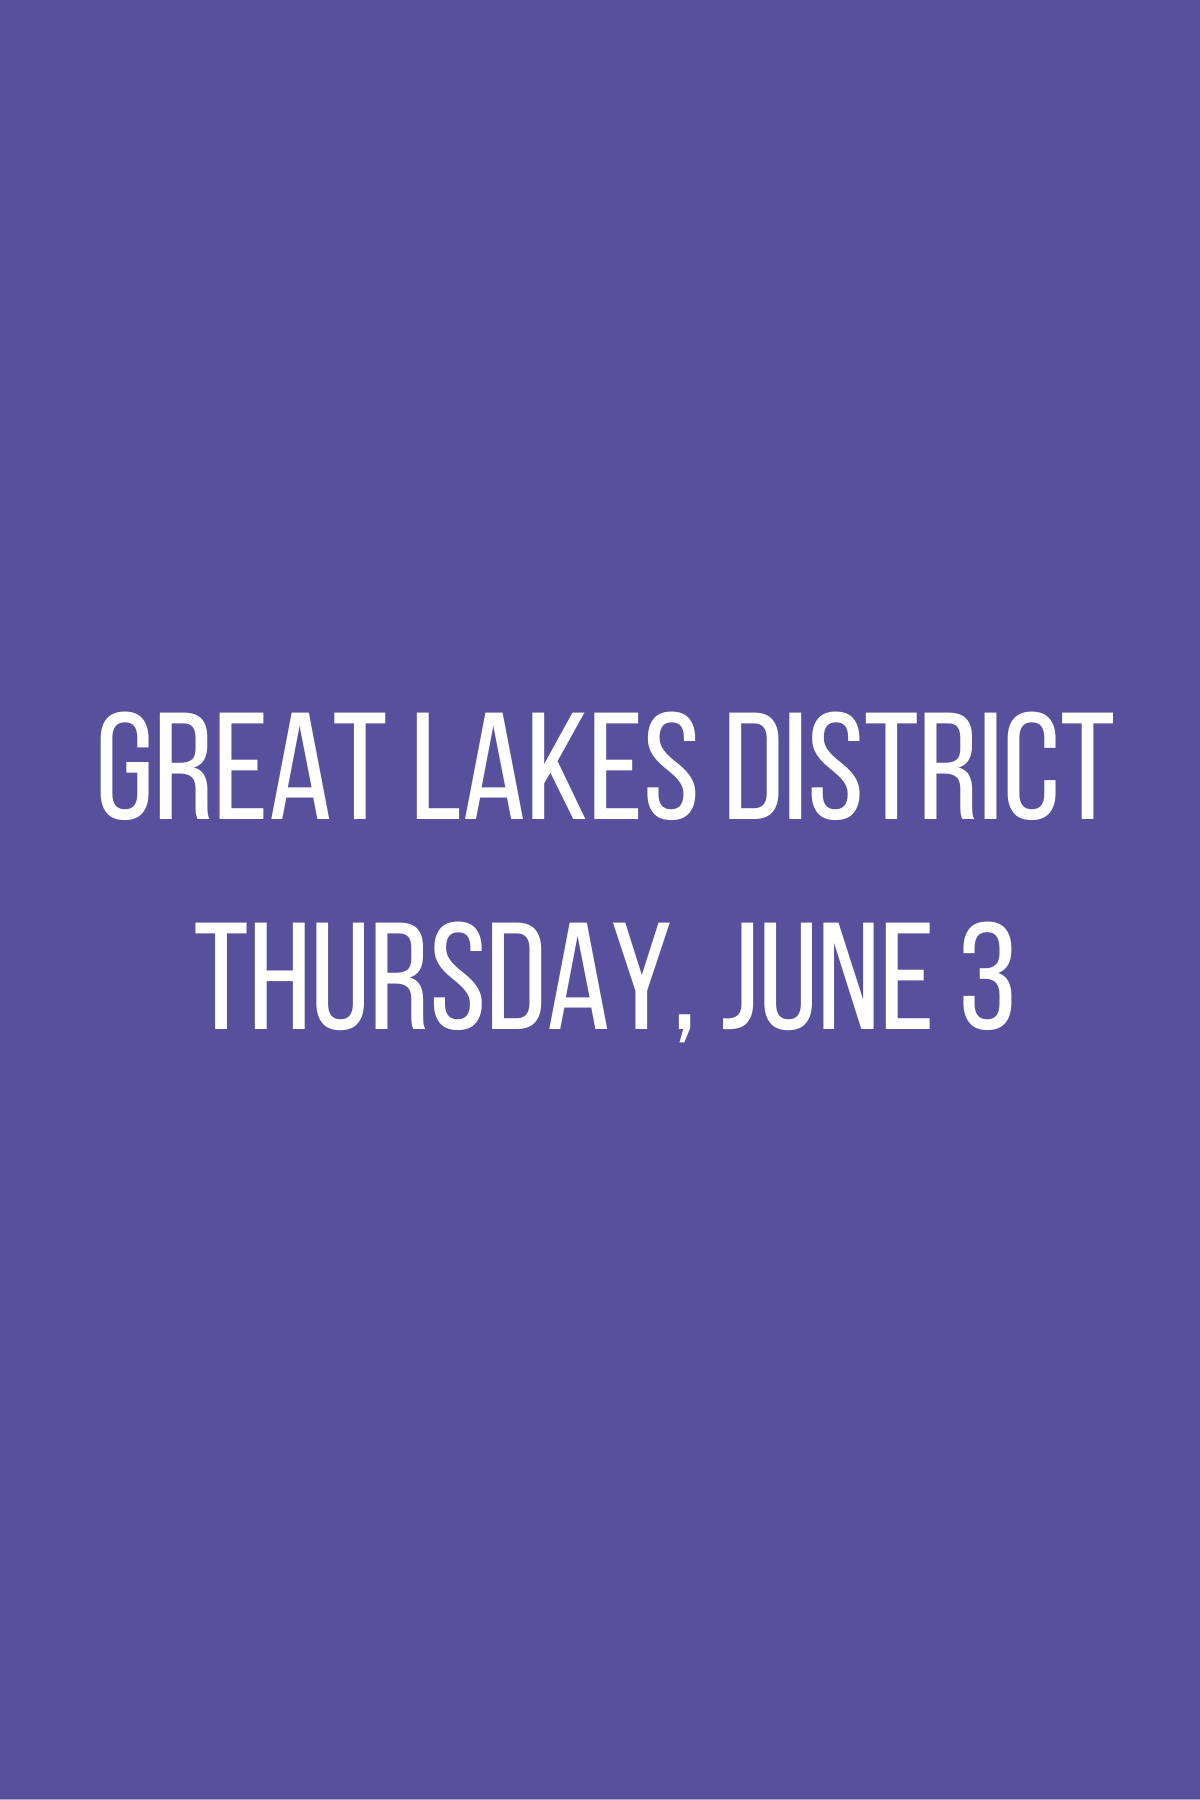 Great Lakes District Meeting - Thursday, June 3